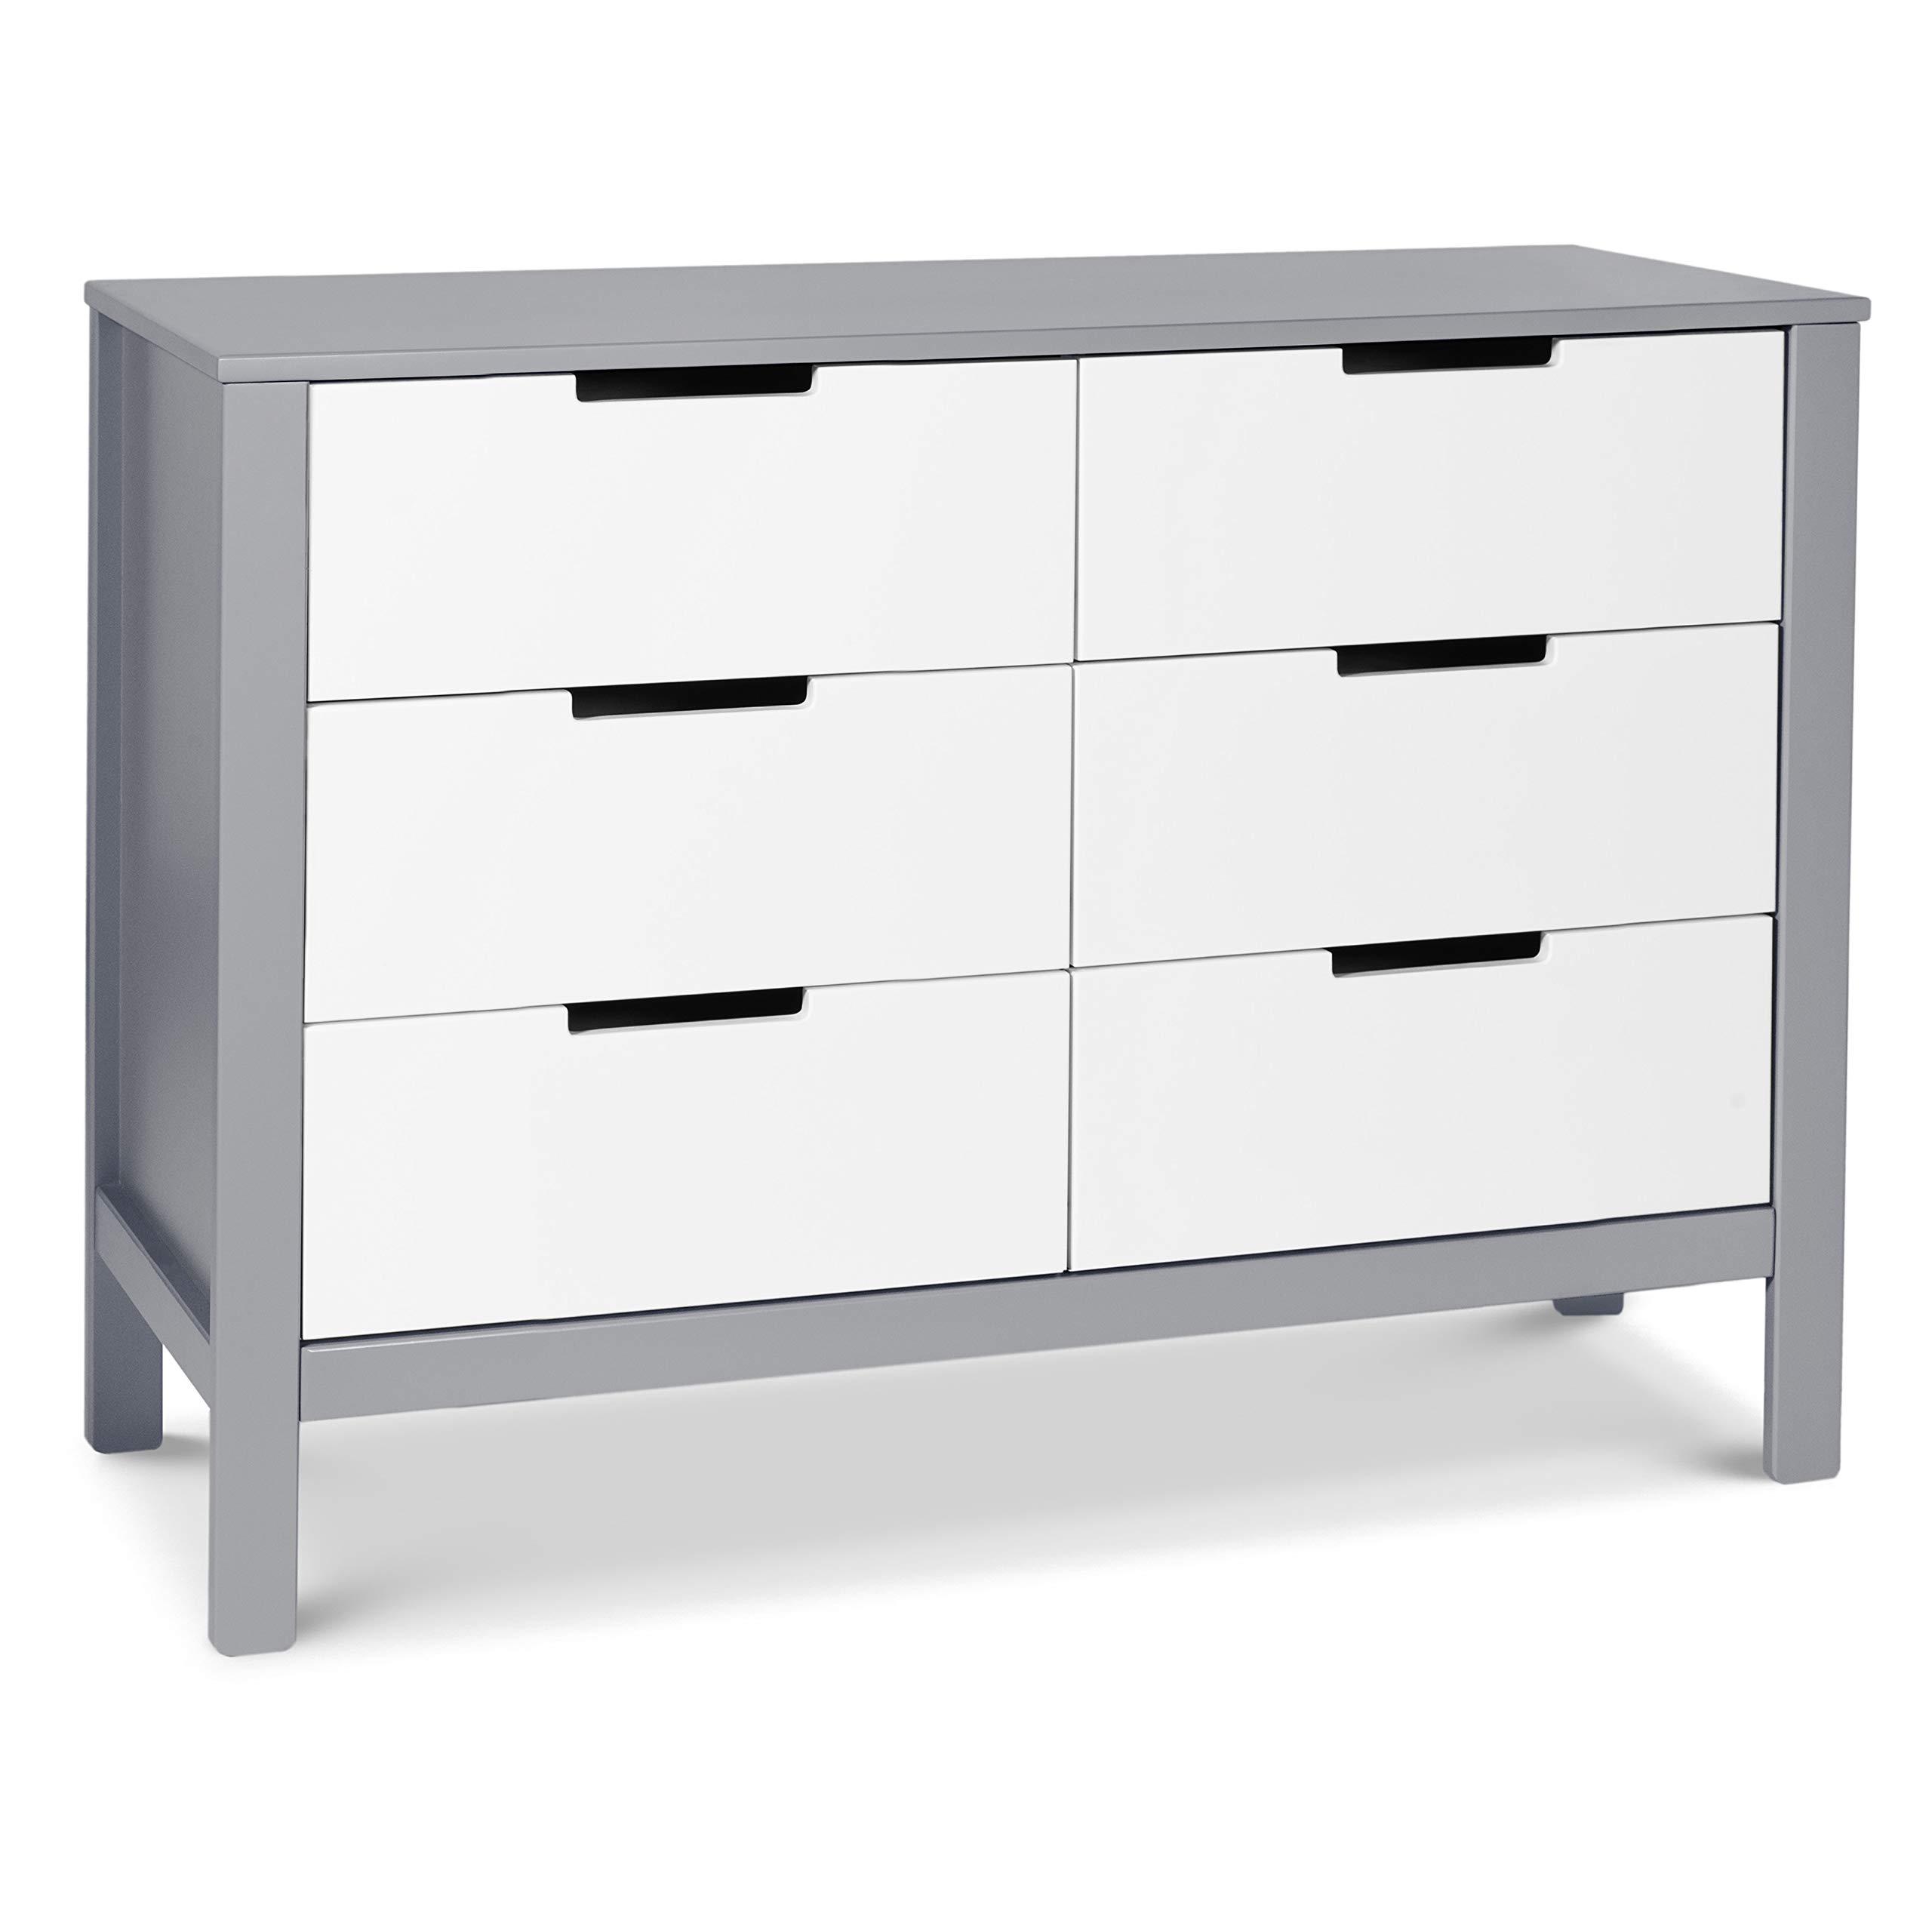 Carter's by Davinci Colby 6 Drawer Dresser, Gray and White by CARTER'S BY DAVINCI